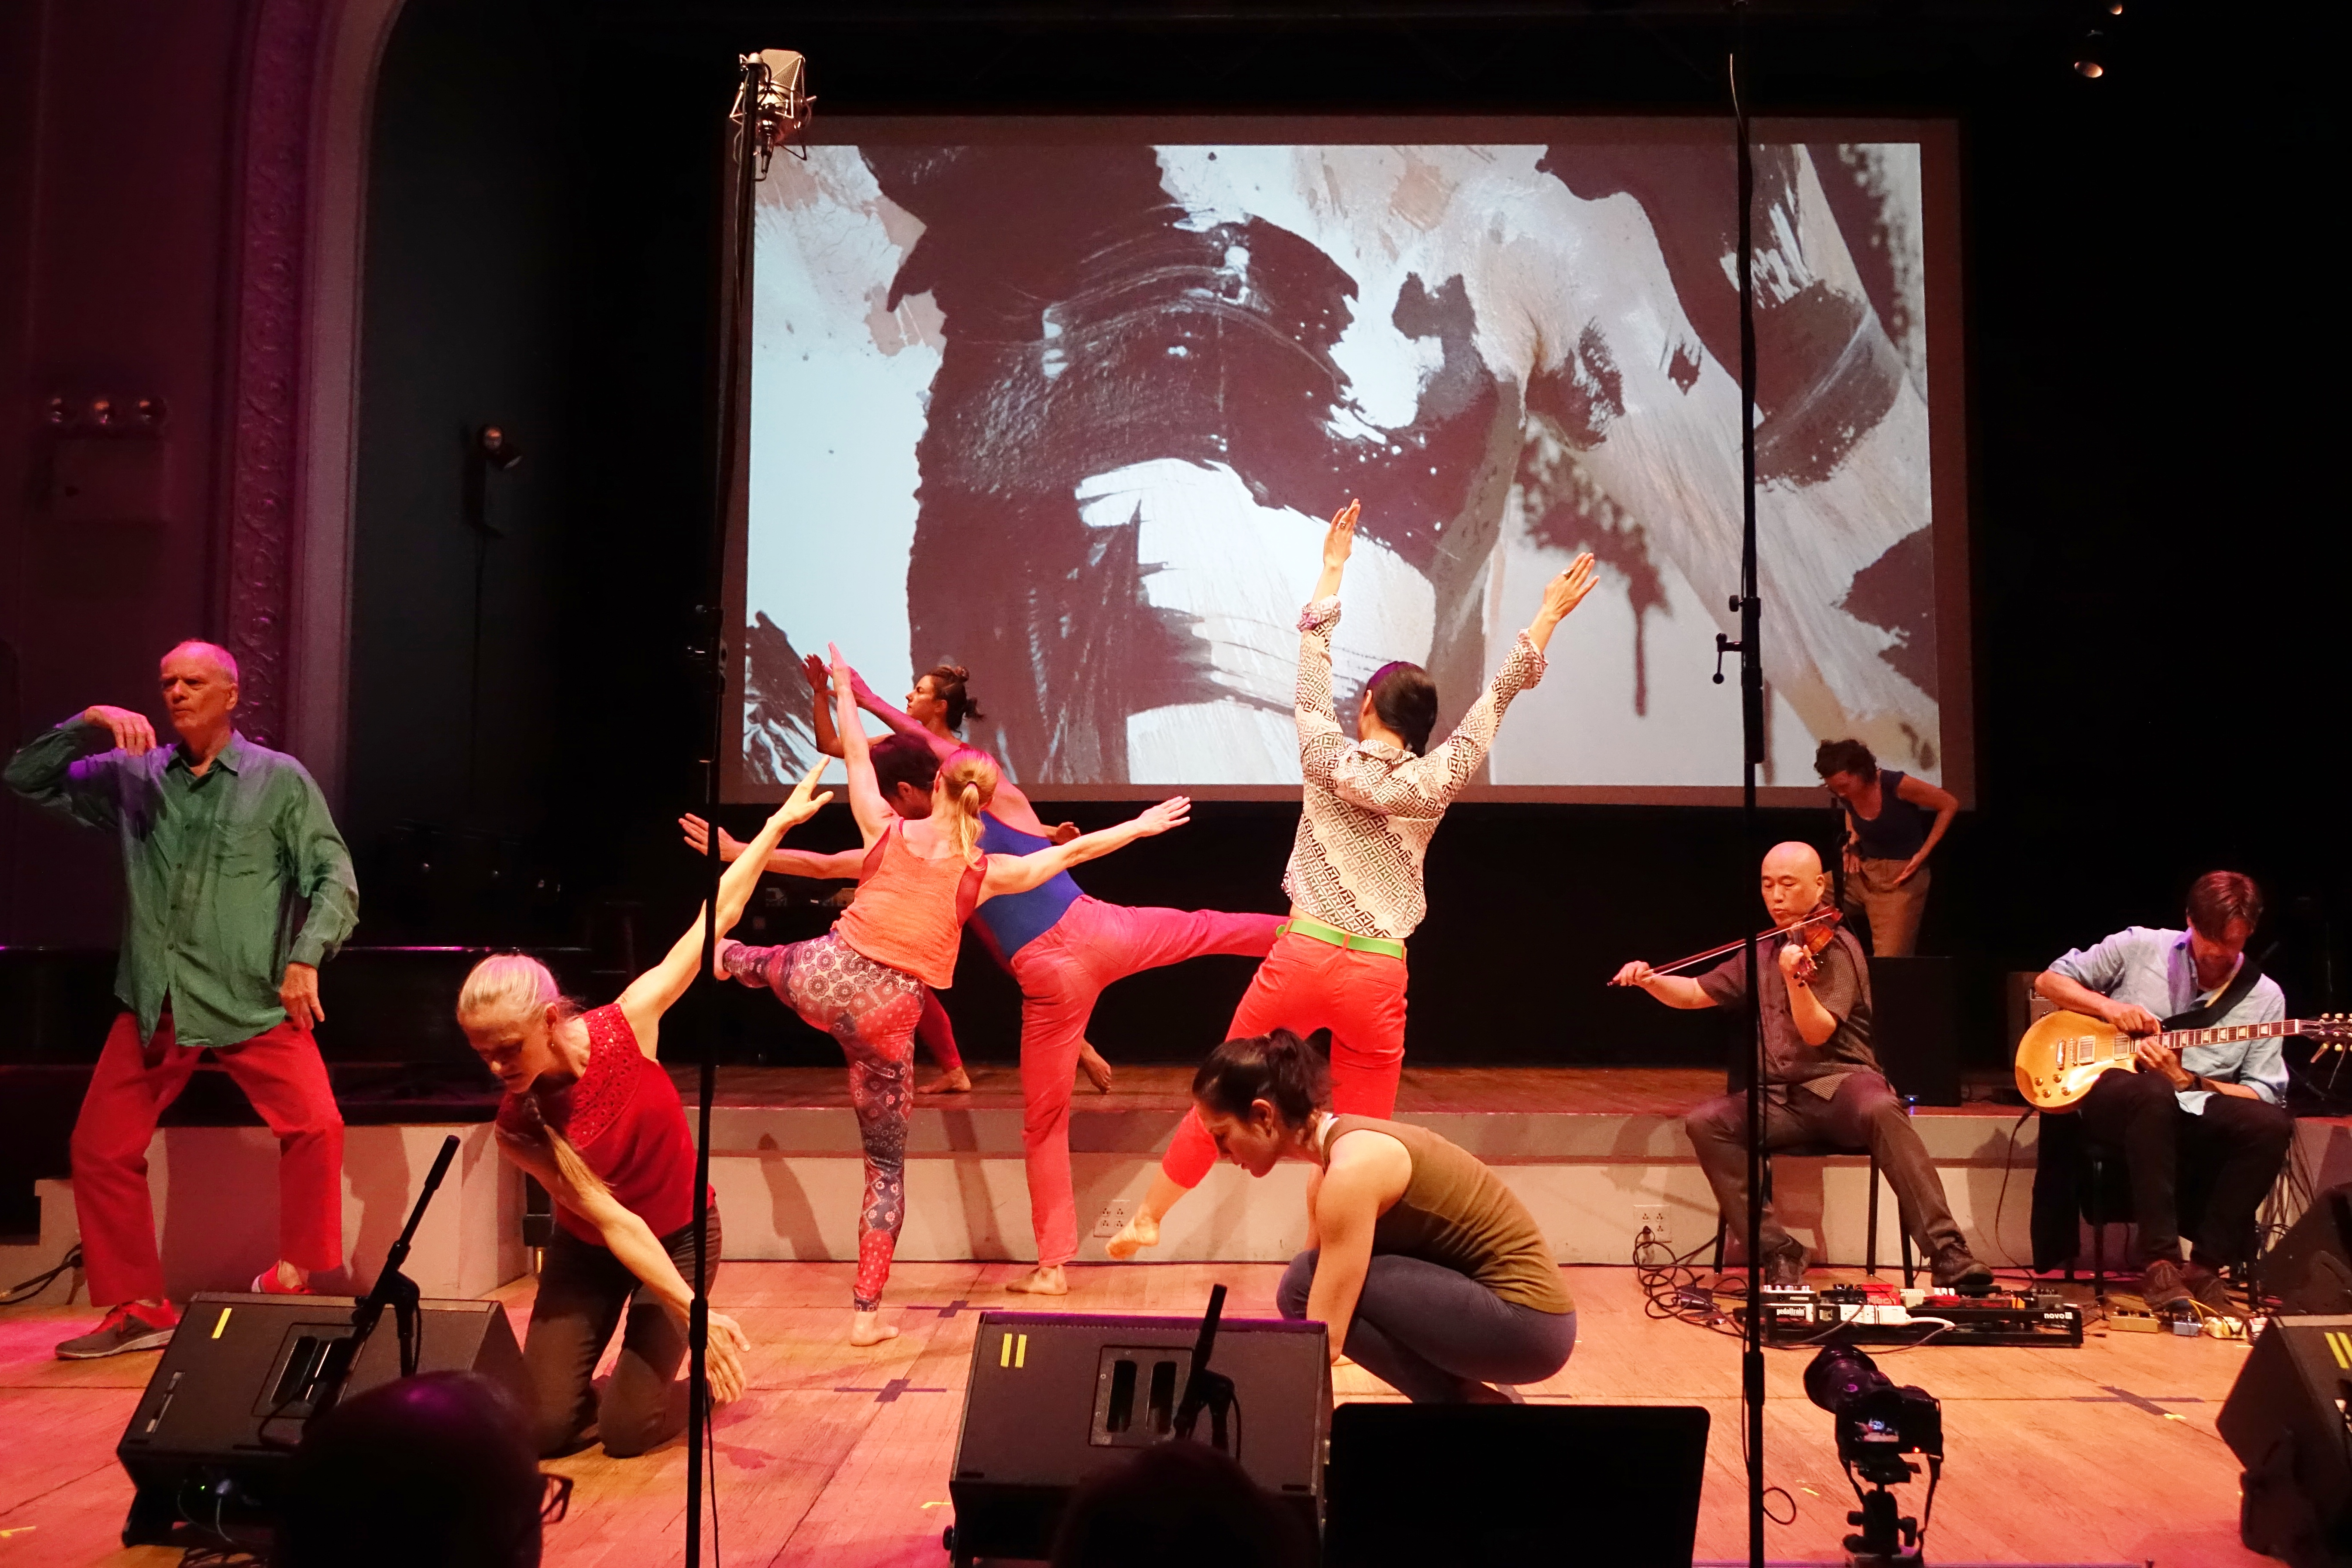 Douglas Dunn dancers with Jason Kao Hwang and Anders Nilsson at the Vision Festival at Roulette, Brooklyn in May 2018